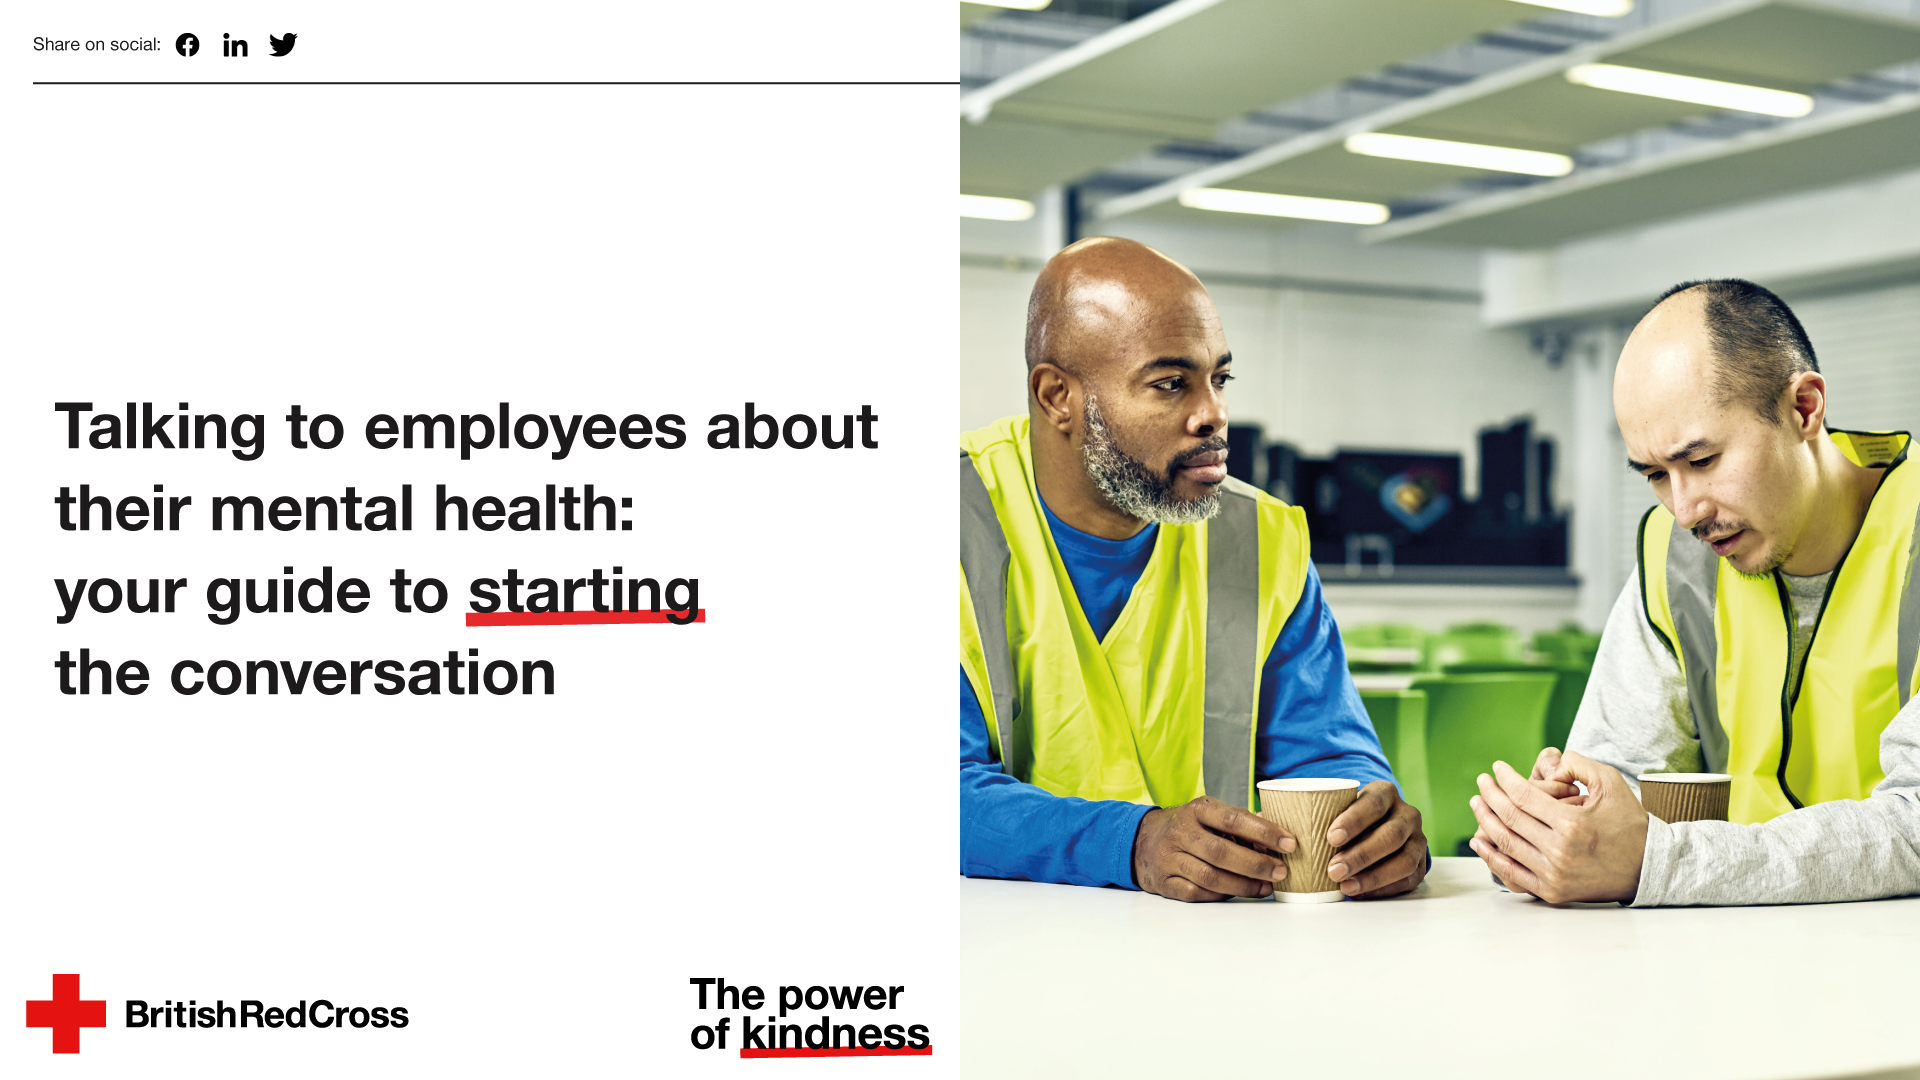 2021---01---British-Red-Cross---Ebook---Talking-to-employees-about-their-mental-health---your-guide-to-starting-the-conversation